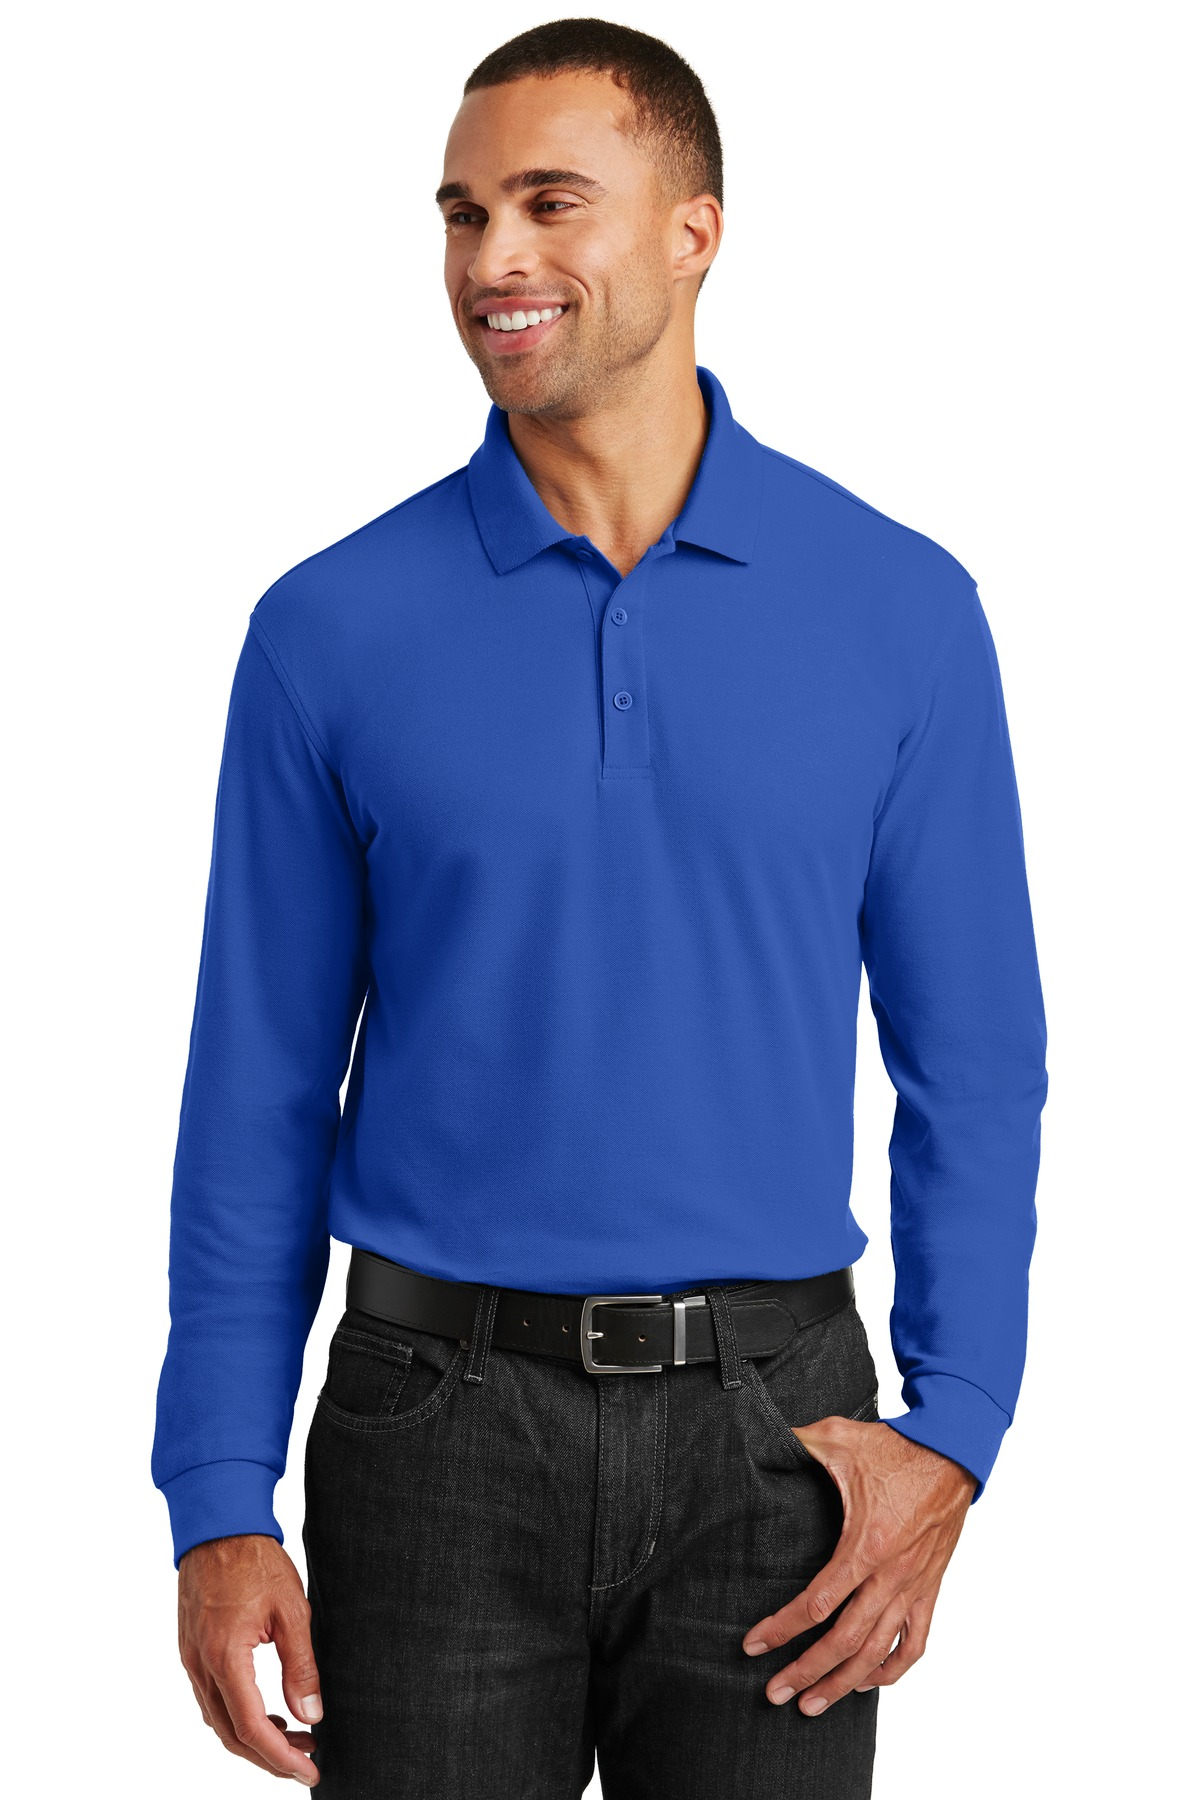 Port-Authority-Mens-Long-Sleeve-Core-Classic-Pique-Polo-Golf-Shirt-K100LS